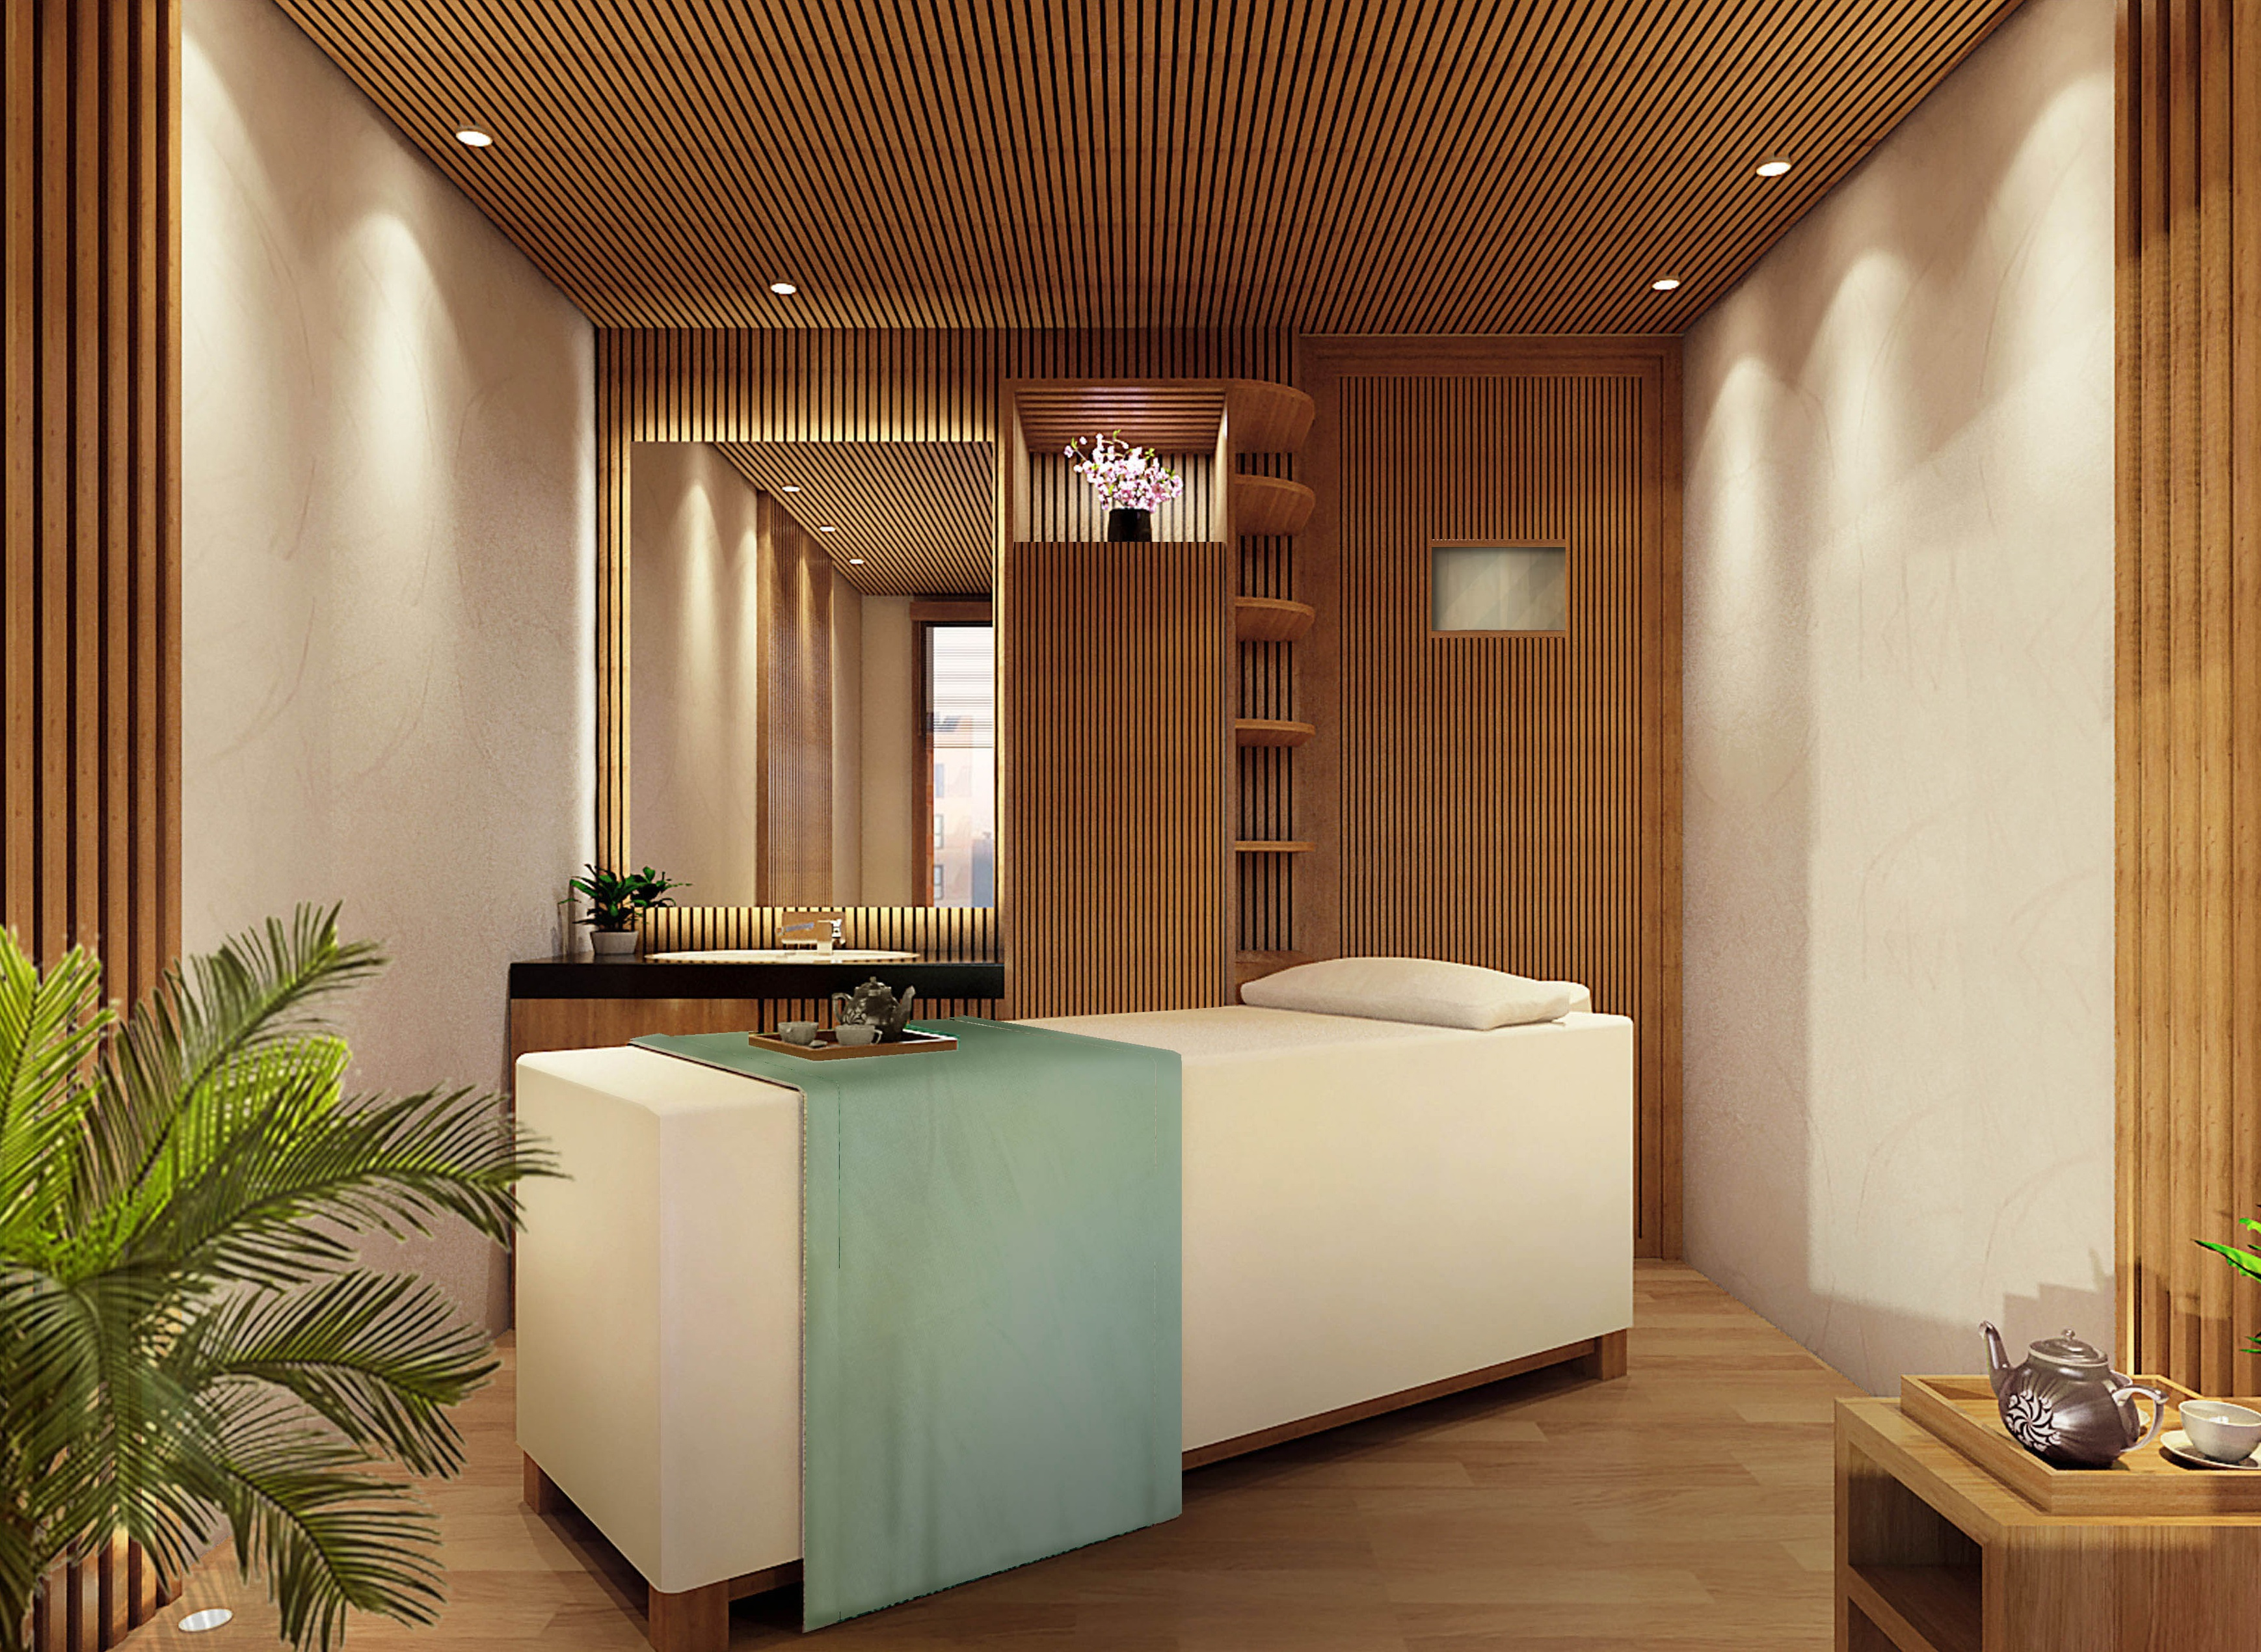 _14a WELLNESS VIEW 1 revisi 3 AD NL